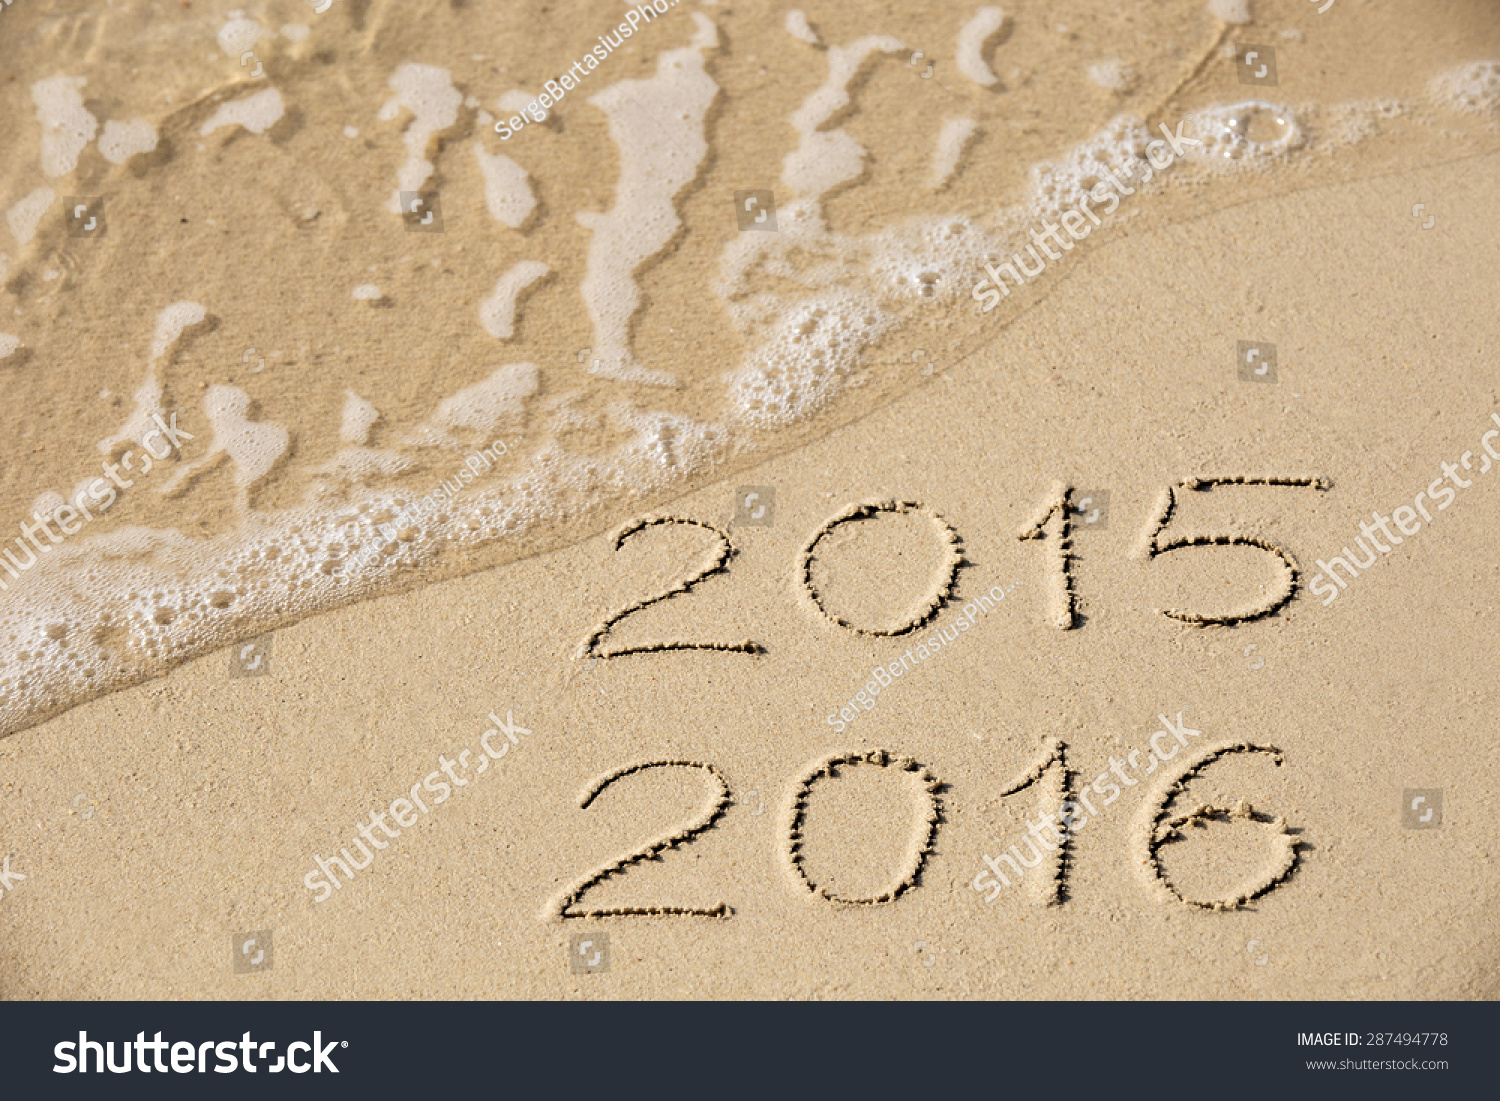 2015 2016 inscription written in the wet yellow beach sand being washed with sea water wave. Concept of celebrating the New Year at some exotic place #287494778